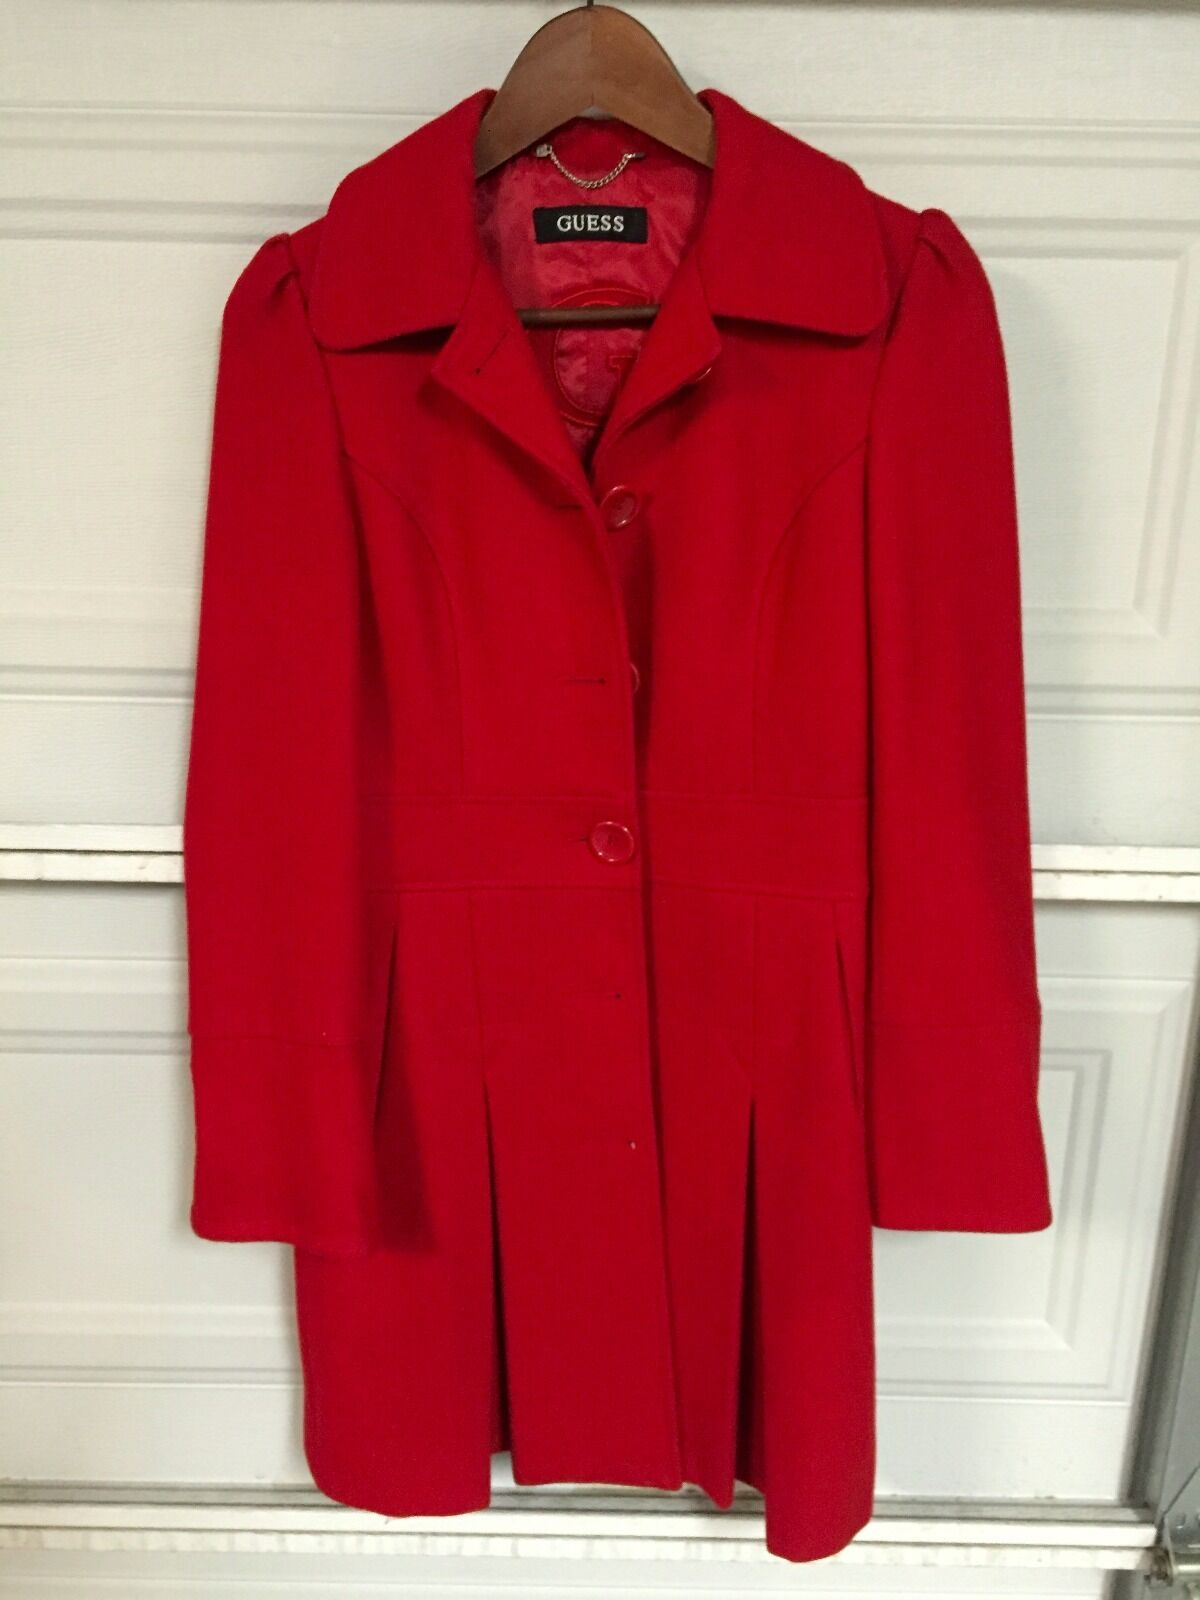 GUESS Long Red Wool Coat - Extra Small - XS